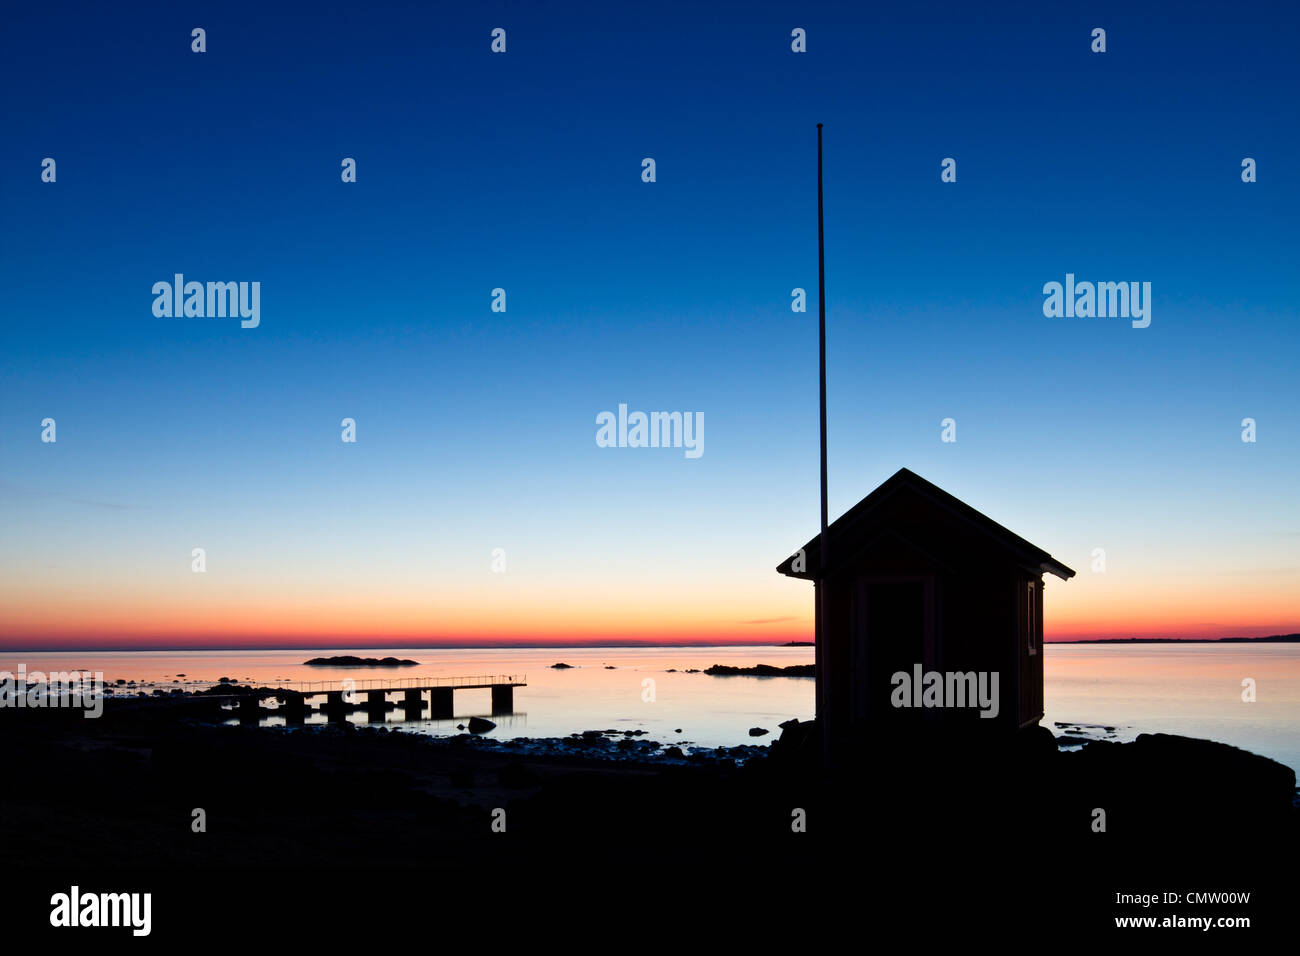 Silhouetted lodge by the sea - Stock Image